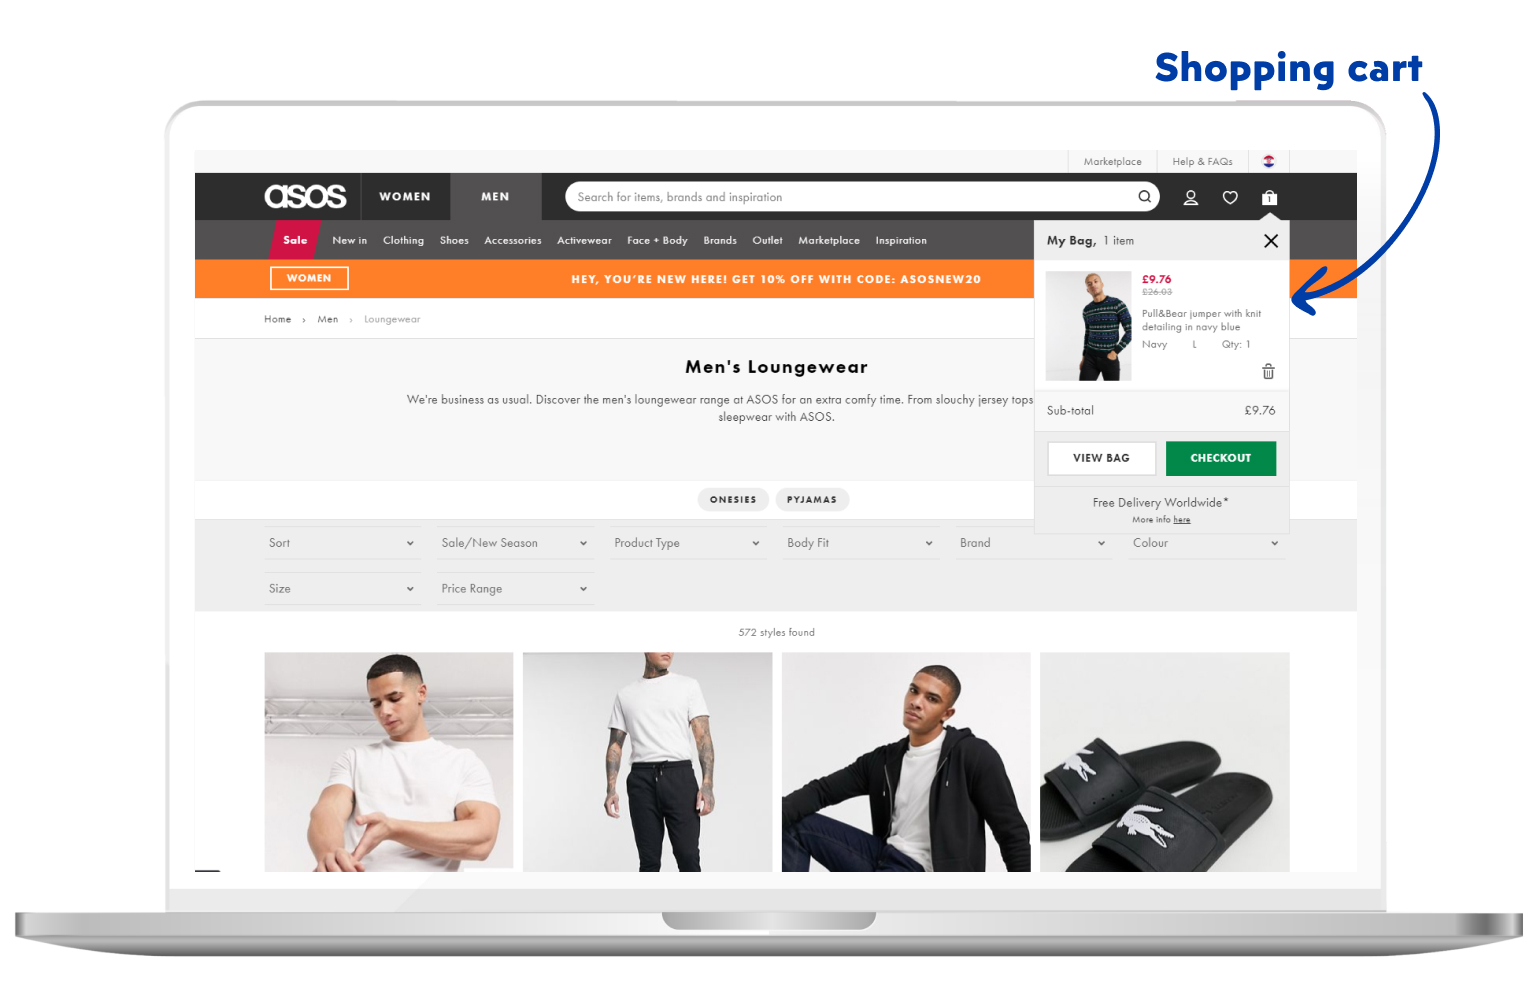 Shopping cart in eCommerce